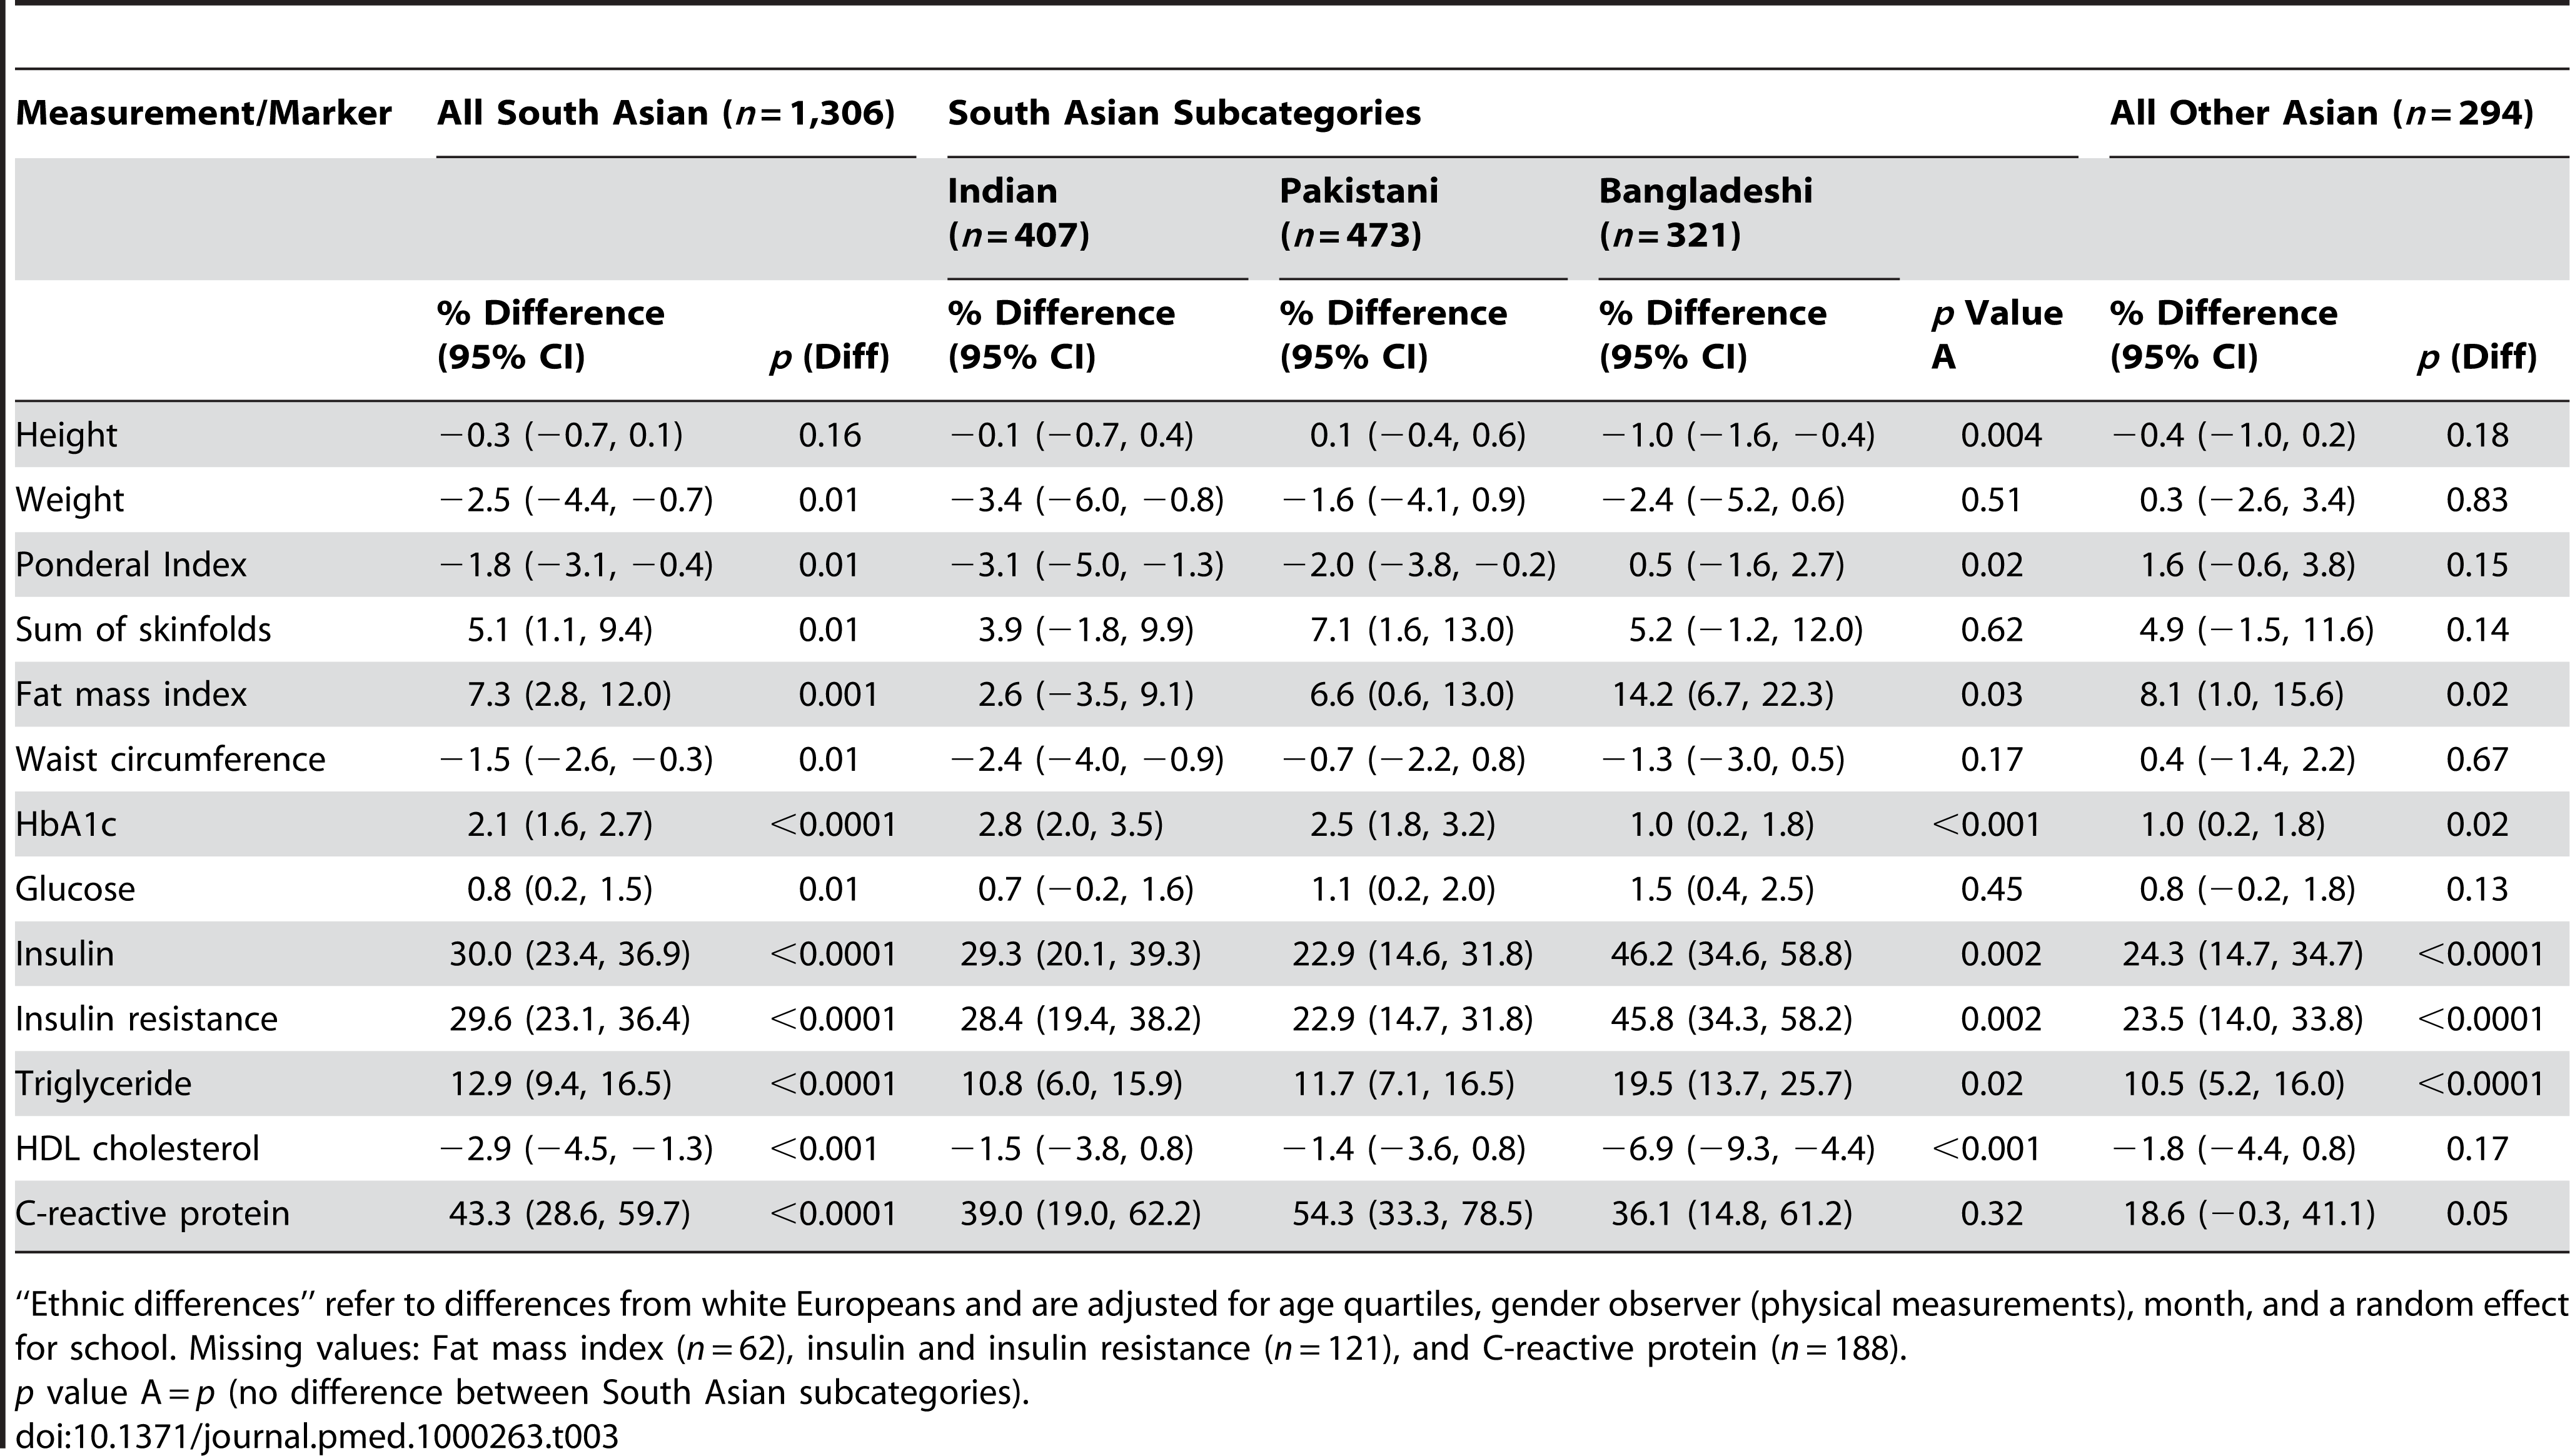 Ethnic differences in physical measurements and blood markers (South Asian and Asian other minus white Europeans).